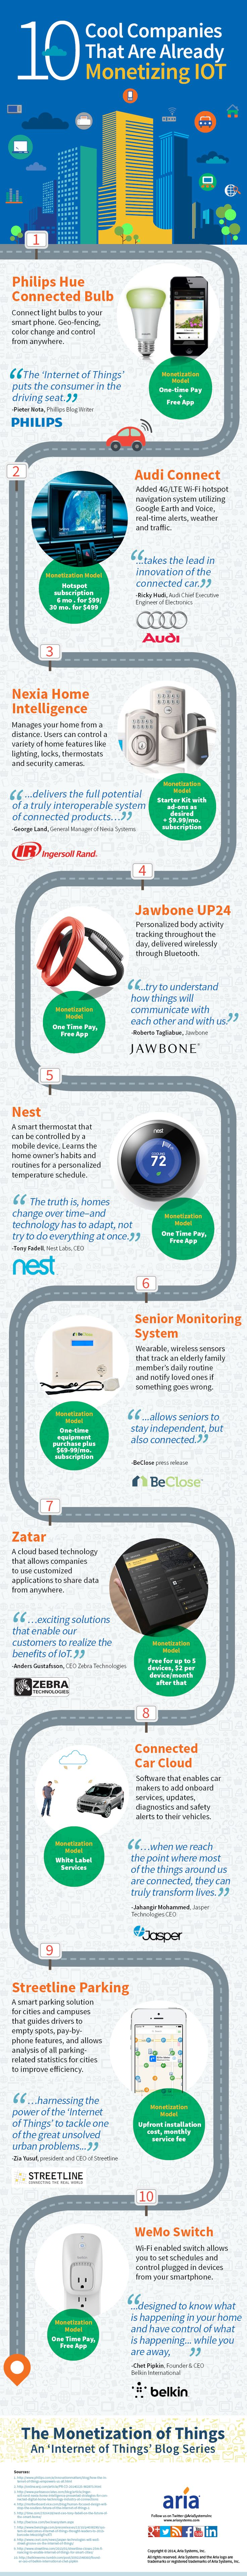 10 Cool Companies That Are Already Monetizing IOT [Infographic]